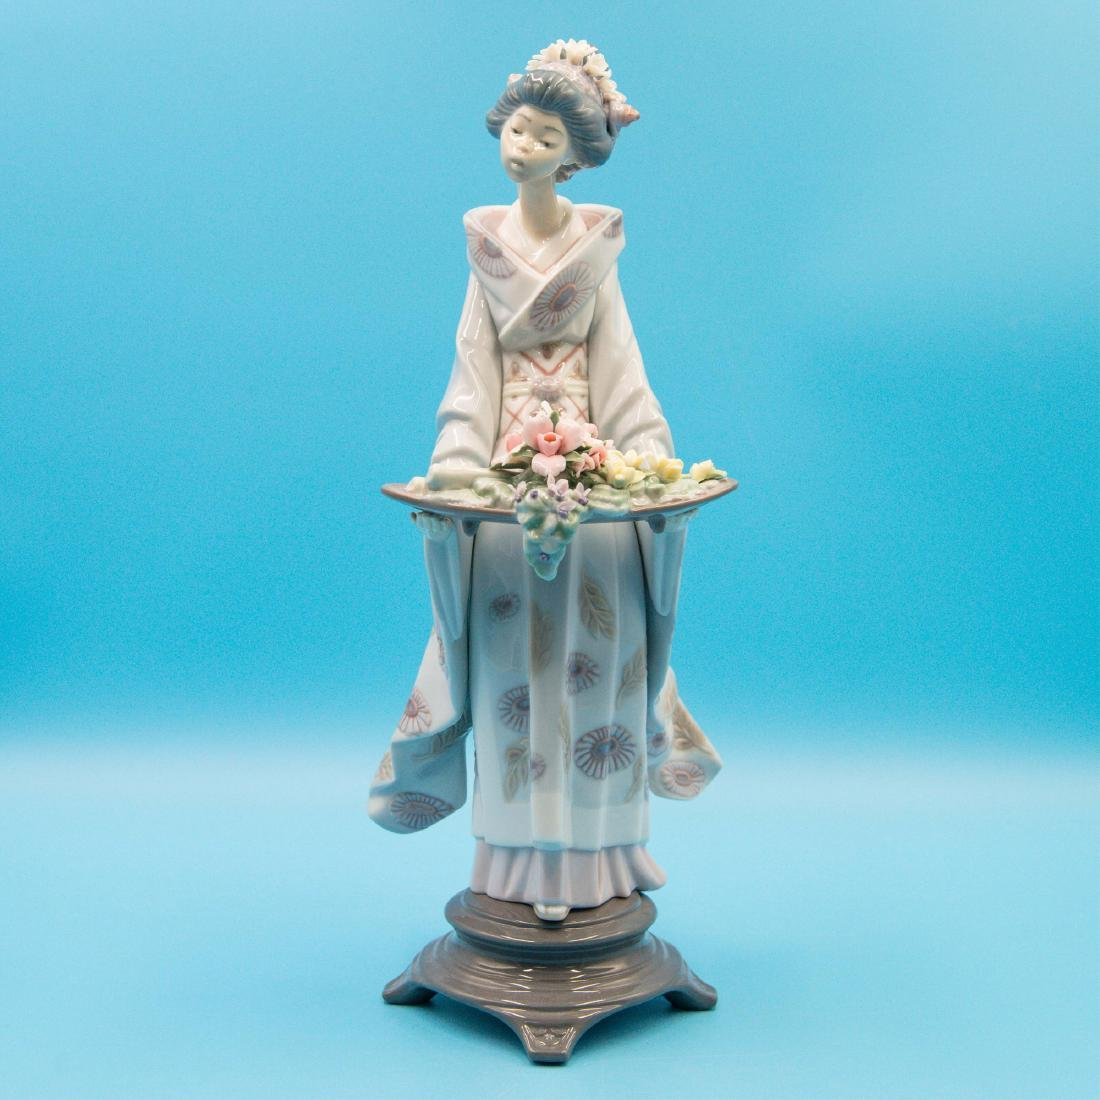 LLADRO NATURE'S GIFTS PORCELAIN FIGURINE